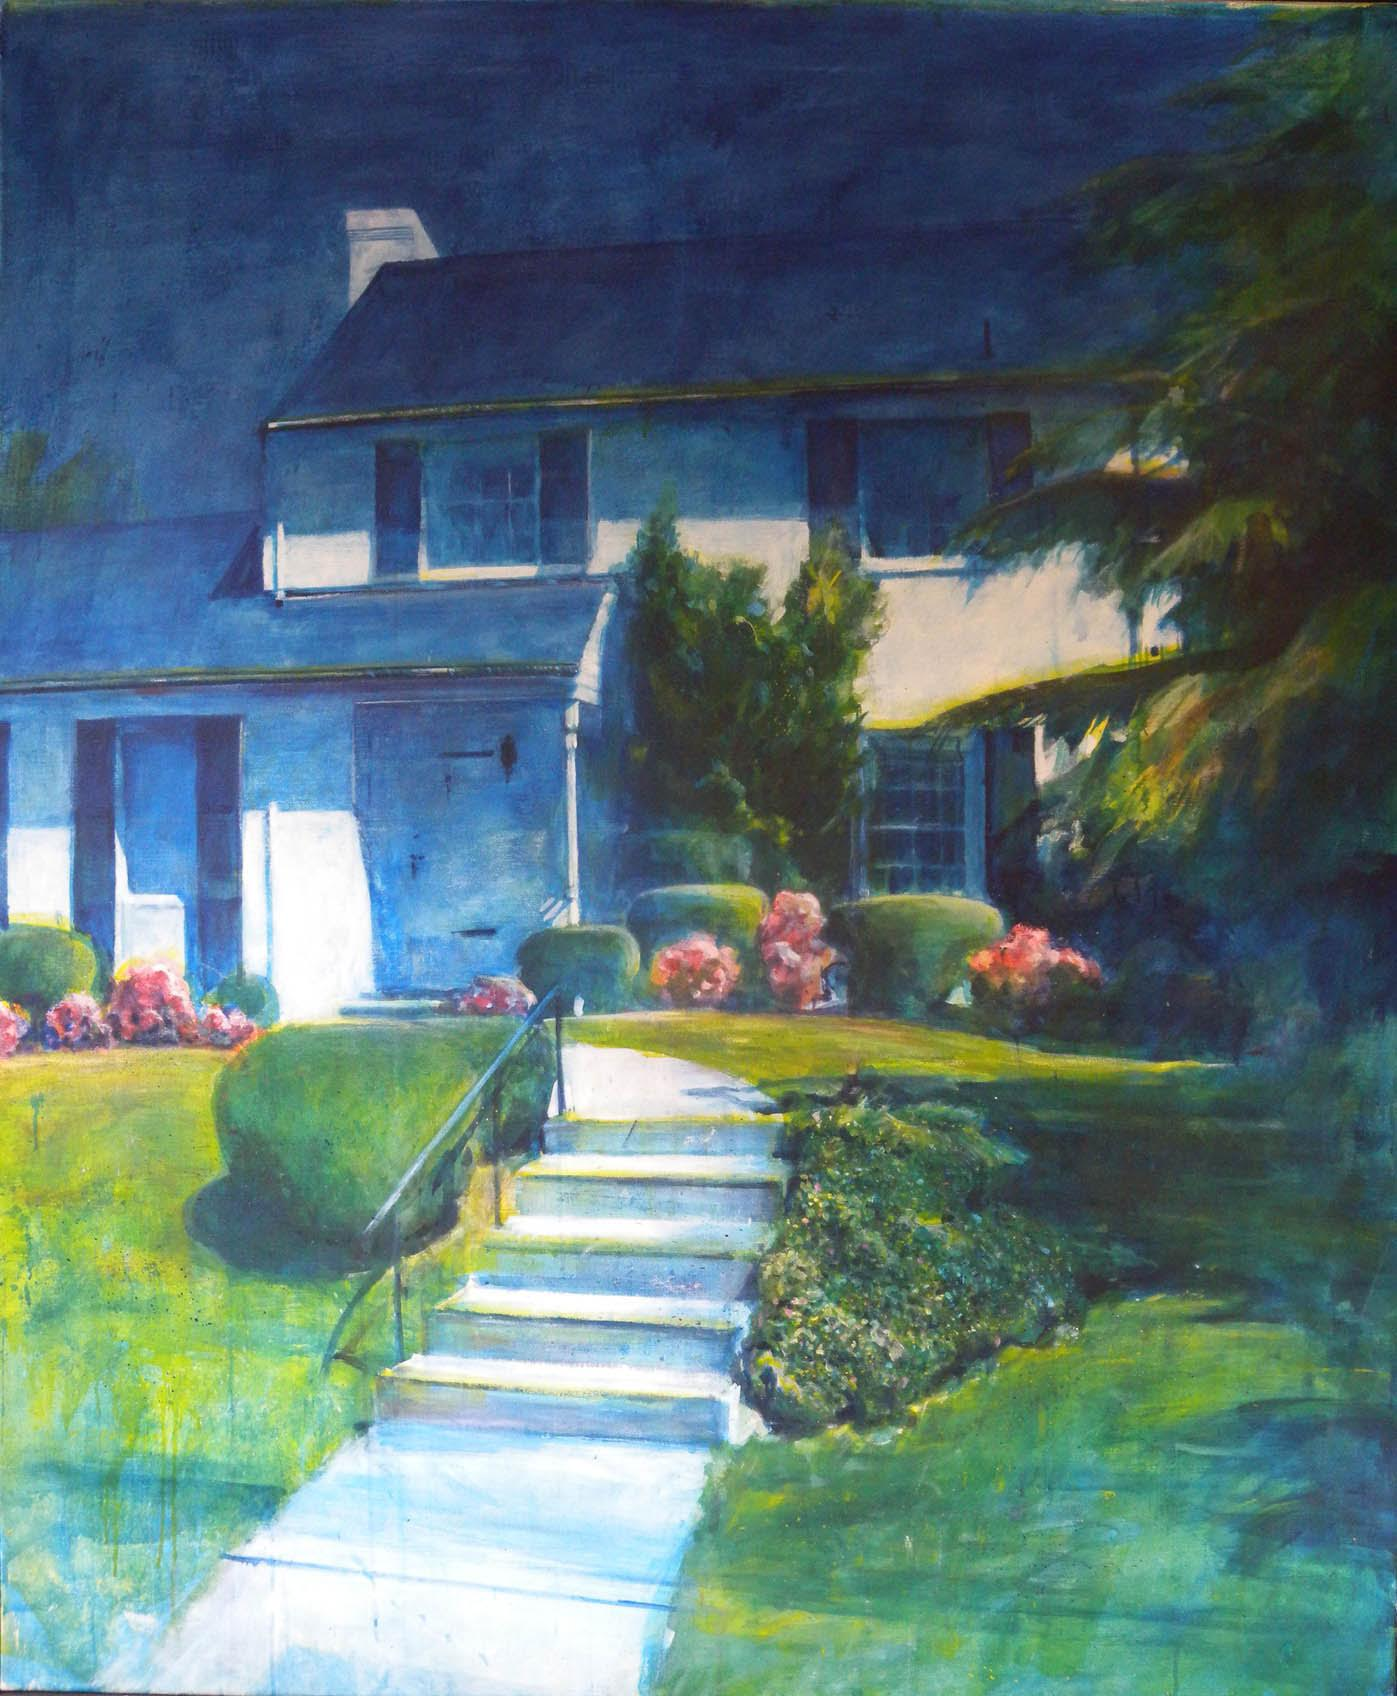 Suburban Idyll,stained canvas,5' x 5', 1970